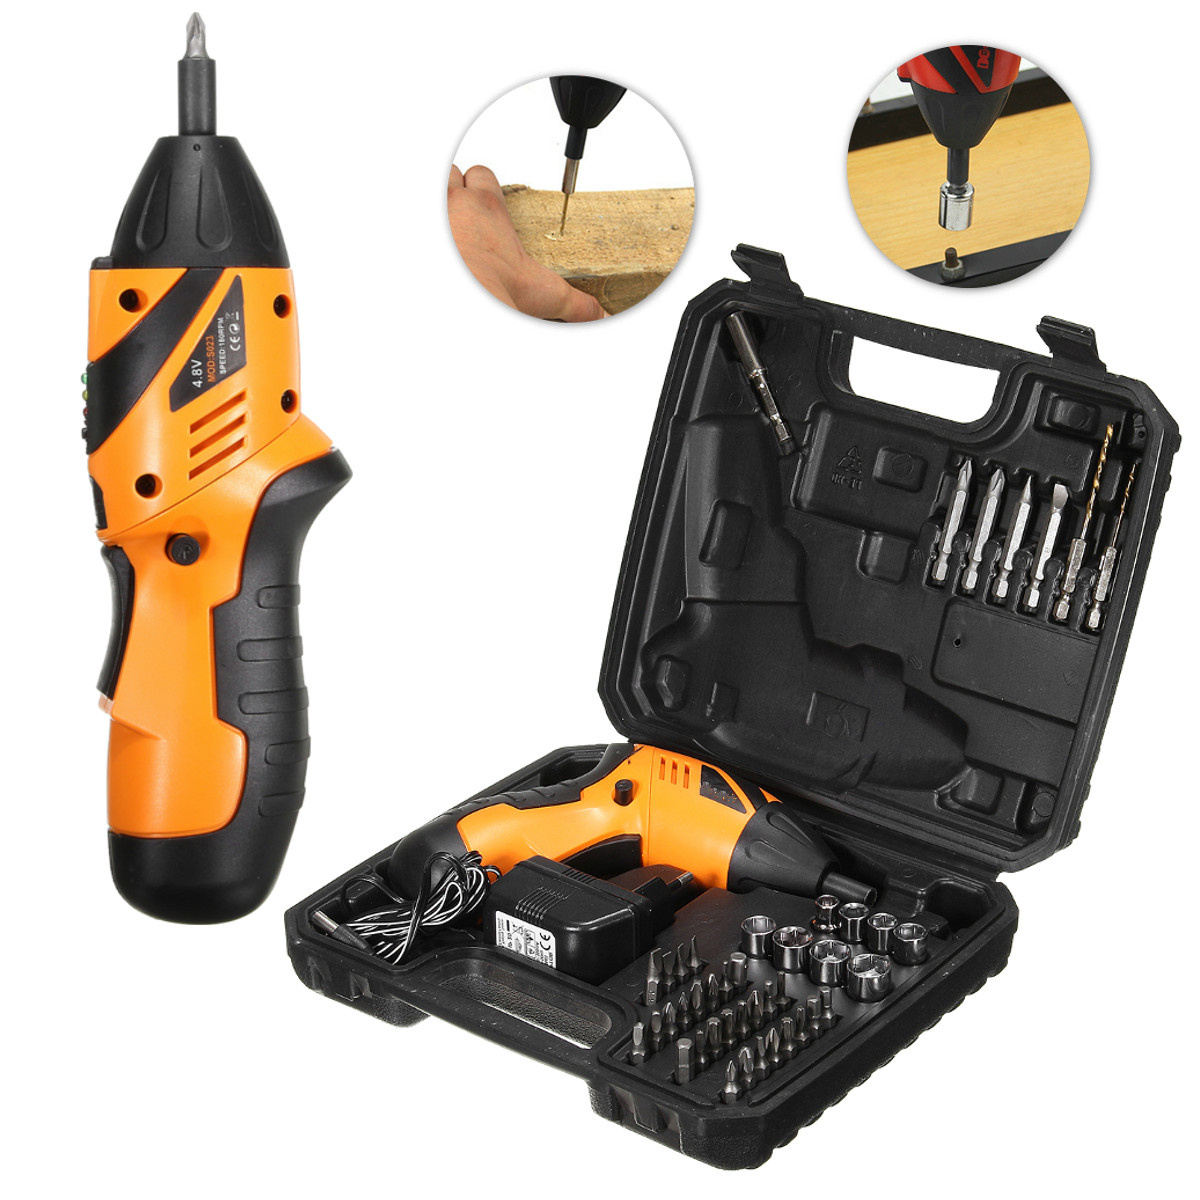 Good Quality 45 in 1 Electric Cordless Screwdriver Drill Power Tool Rechargeable Fold Driver With Plastic Box Package high quality power tool 25v cordless